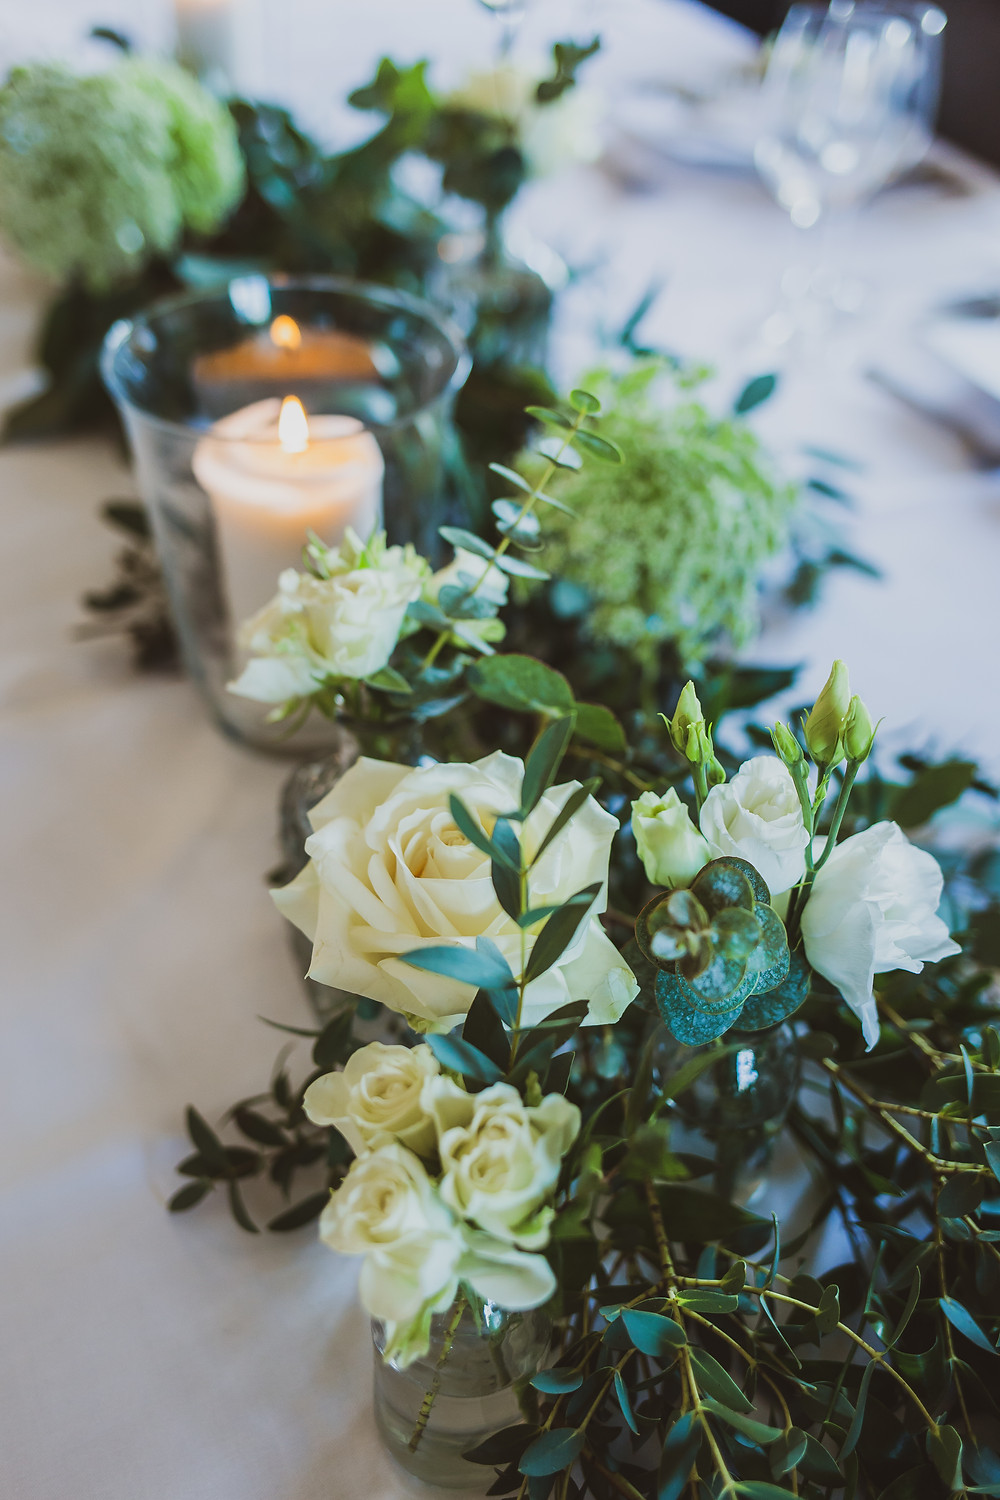 Close-up of elegant wedding reception table-setting with white flowers and green foliage, and candles in clear class jars